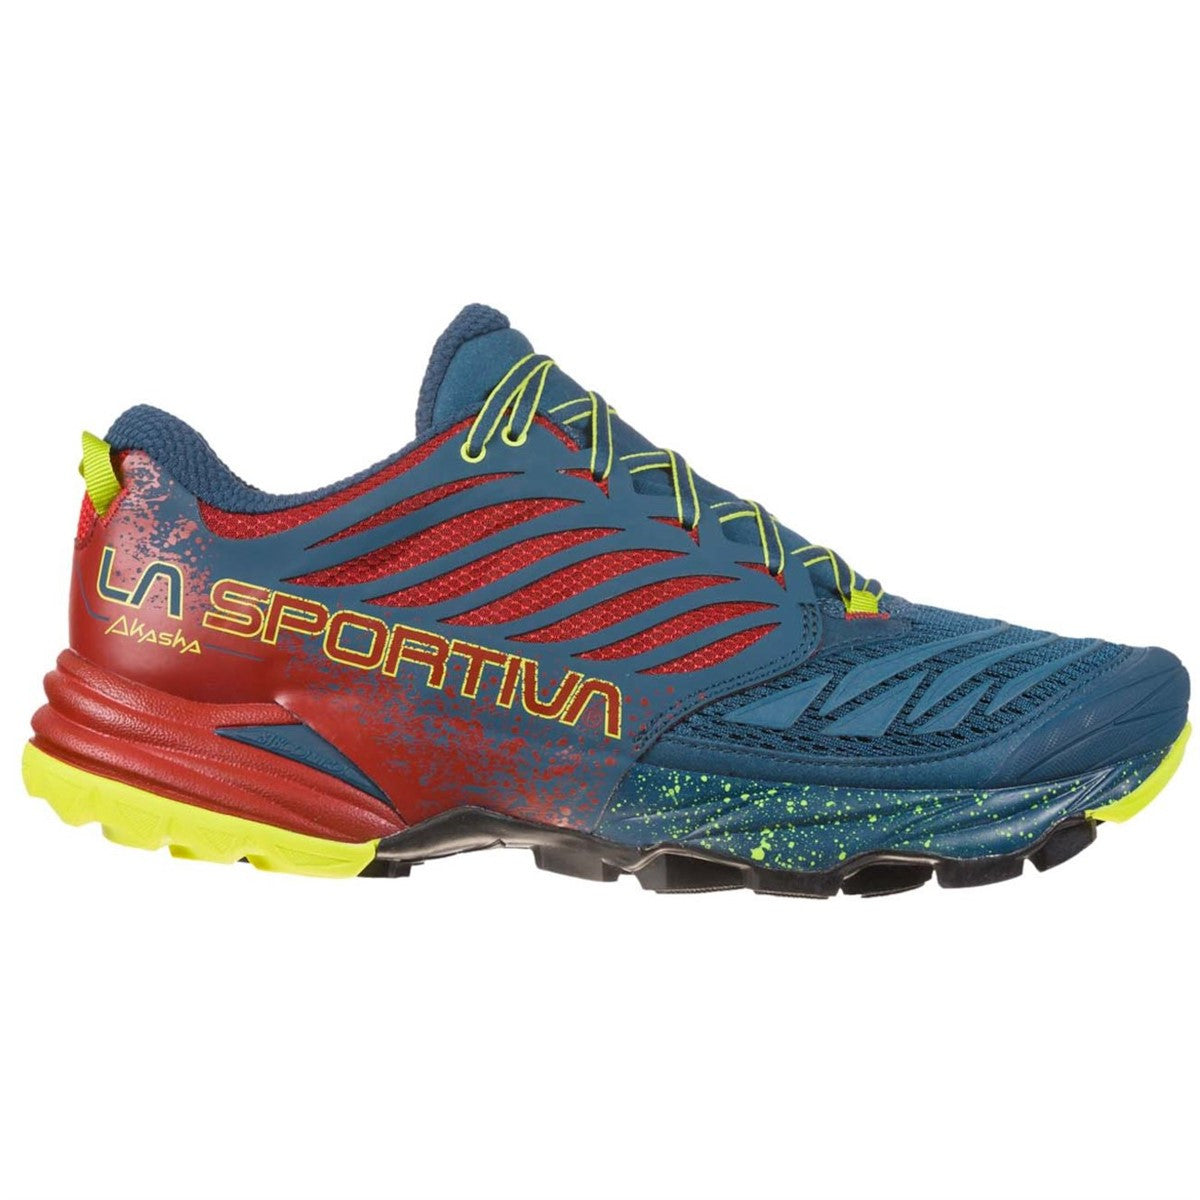 La Sportiva Akasha Trail Running Shoes (Men's) - Opal Chili - Find Your Feet Australia Hobart Launceston Tasmania